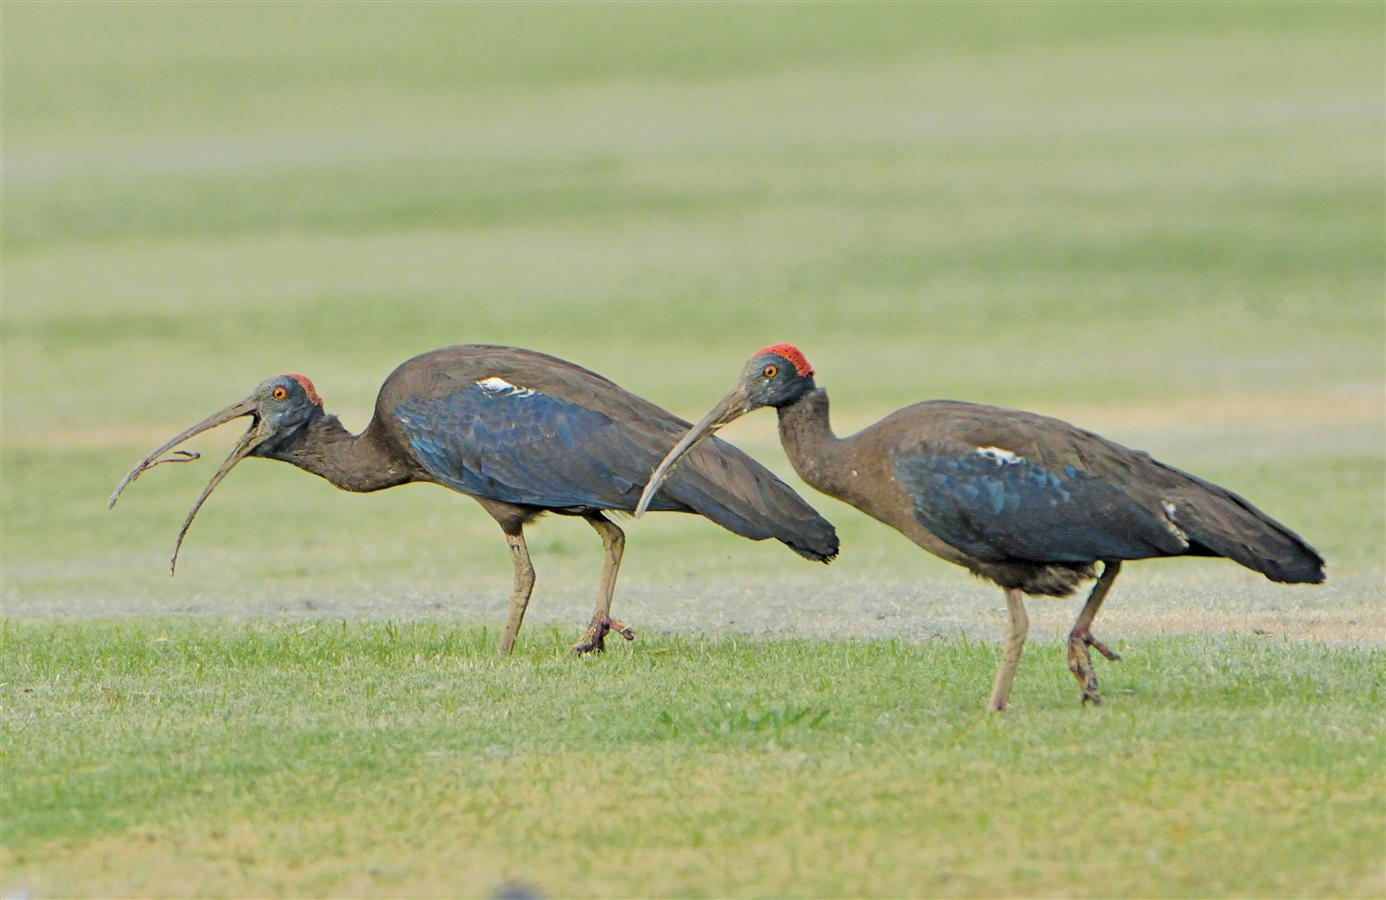 They are a common sight in the vicinity of the golf and polo grounds in the President's Estate.